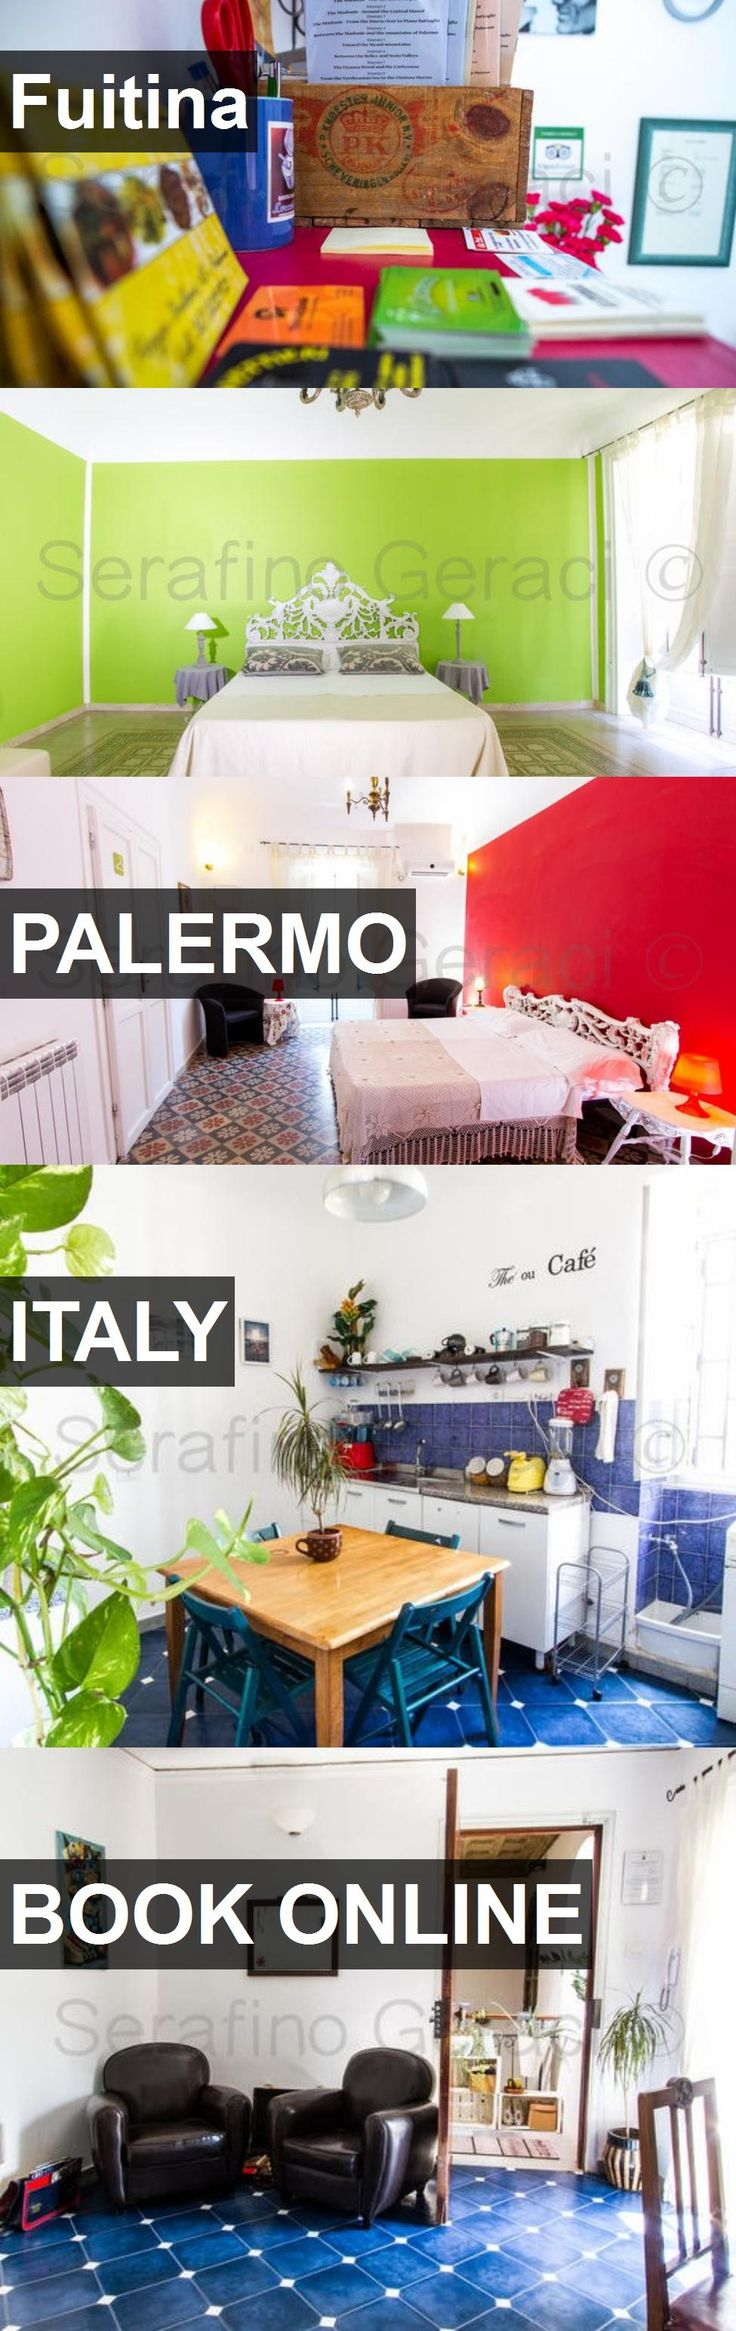 Hotel Fuitina in Palermo, Italy. For more information, photos, reviews and best prices please follow the link. #Italy #Palermo #Fuitina #hotel #travel #vacation